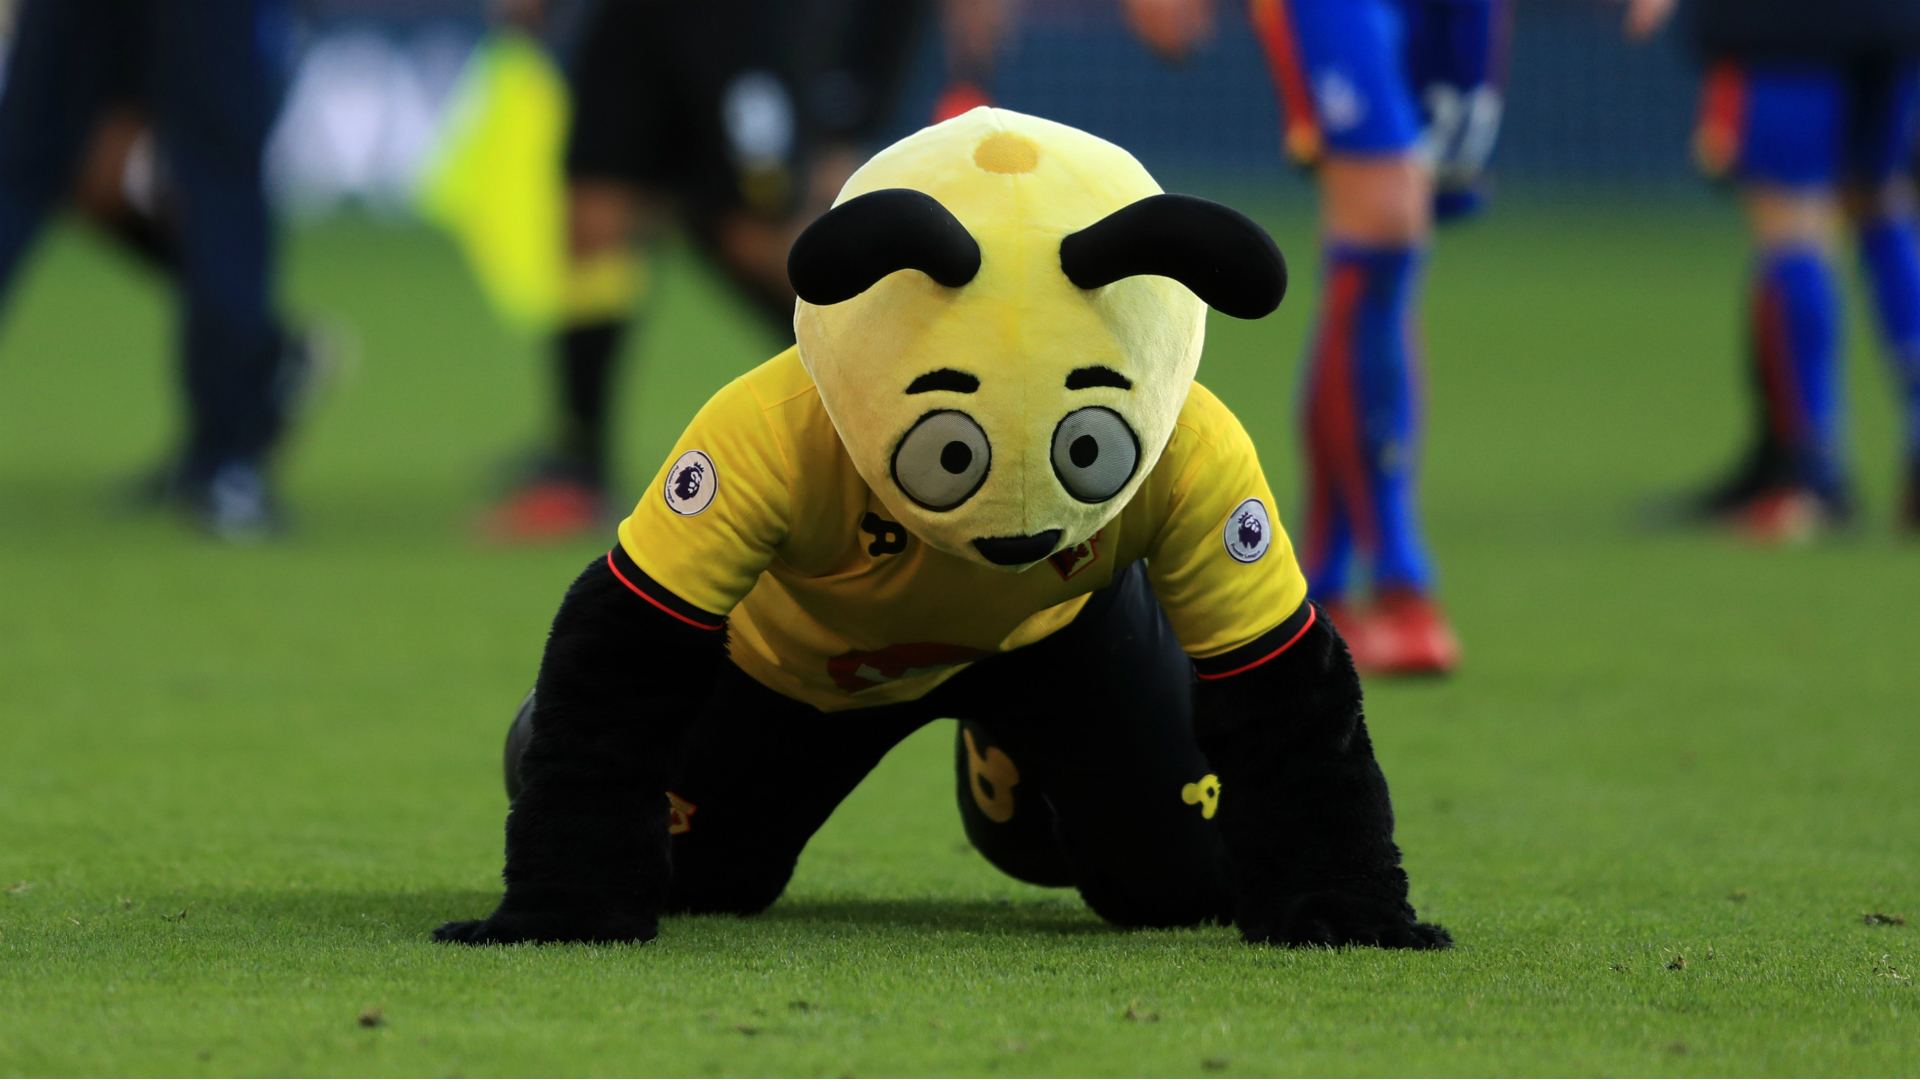 Furious Roy Hodgson Slams Watford Mascot Harry The Hornet In Remarkable Rant